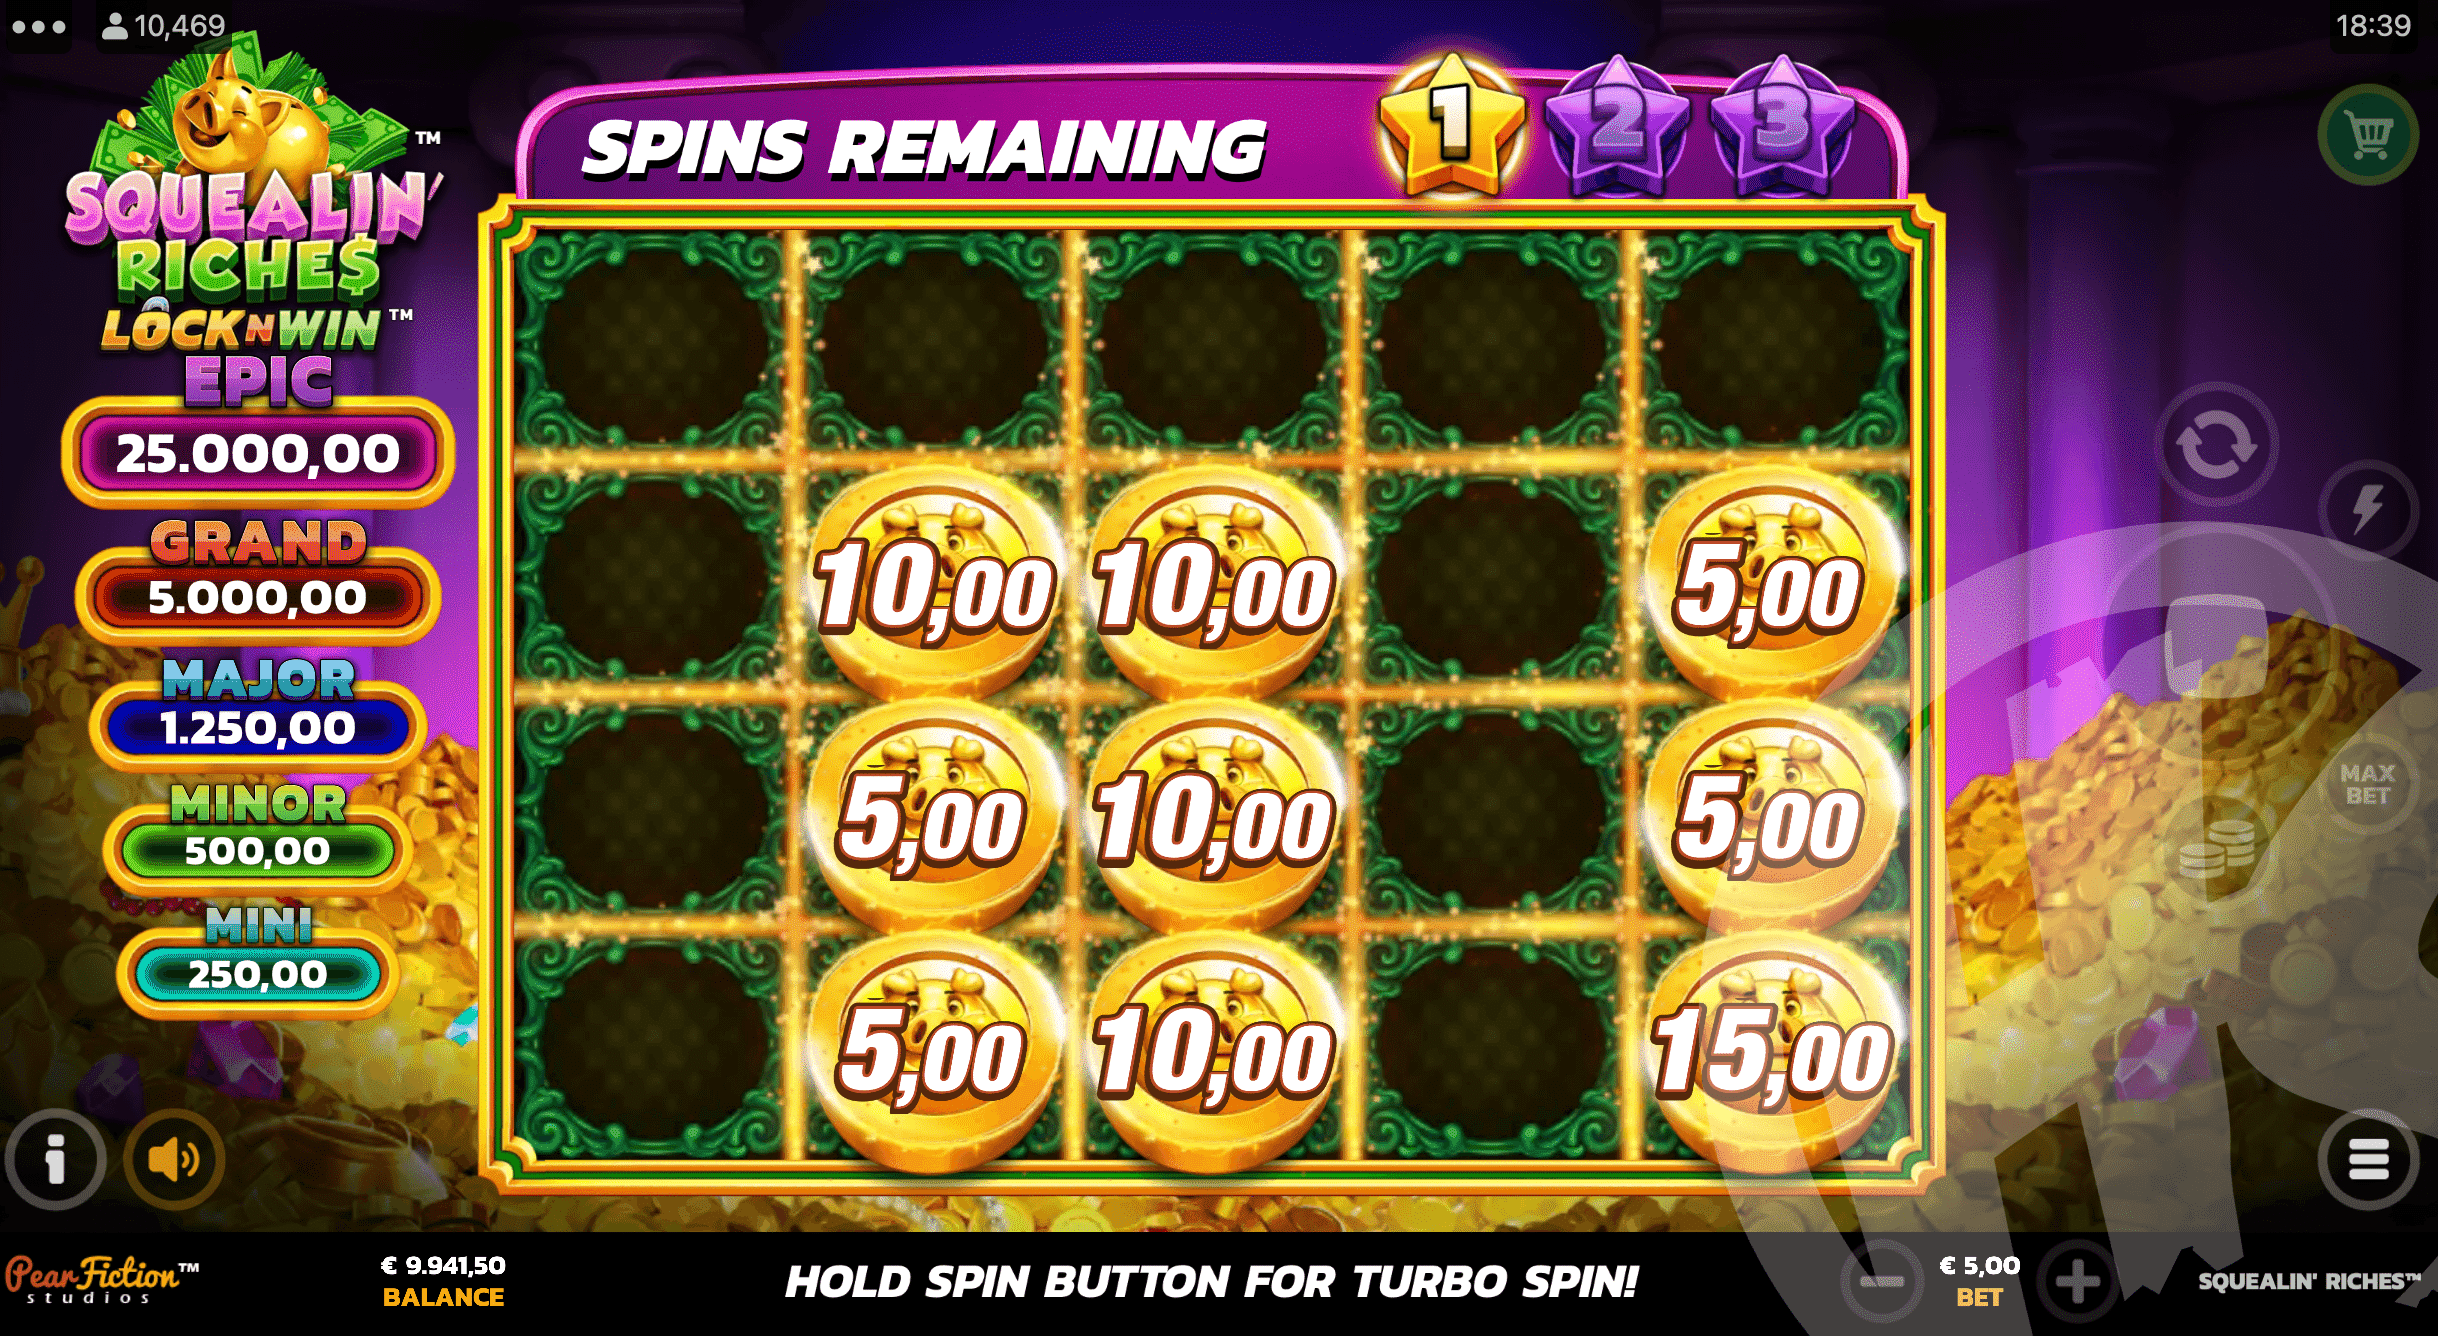 6 or More Bonus Symbols in View Triggers the LockNWin Respin Feature